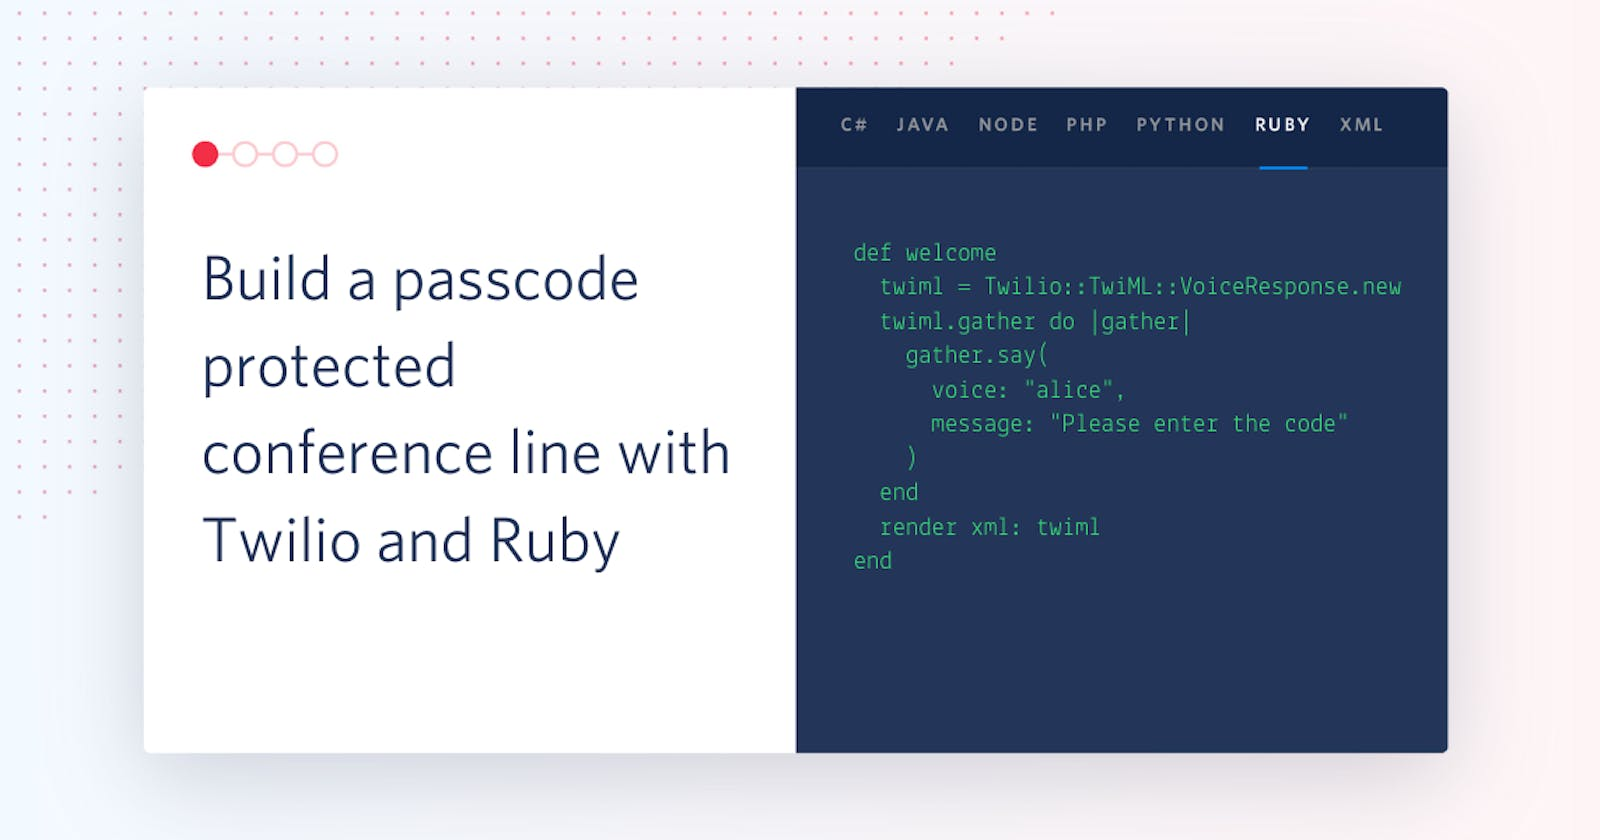 Build a passcode protected conference line with Twilio and Ruby